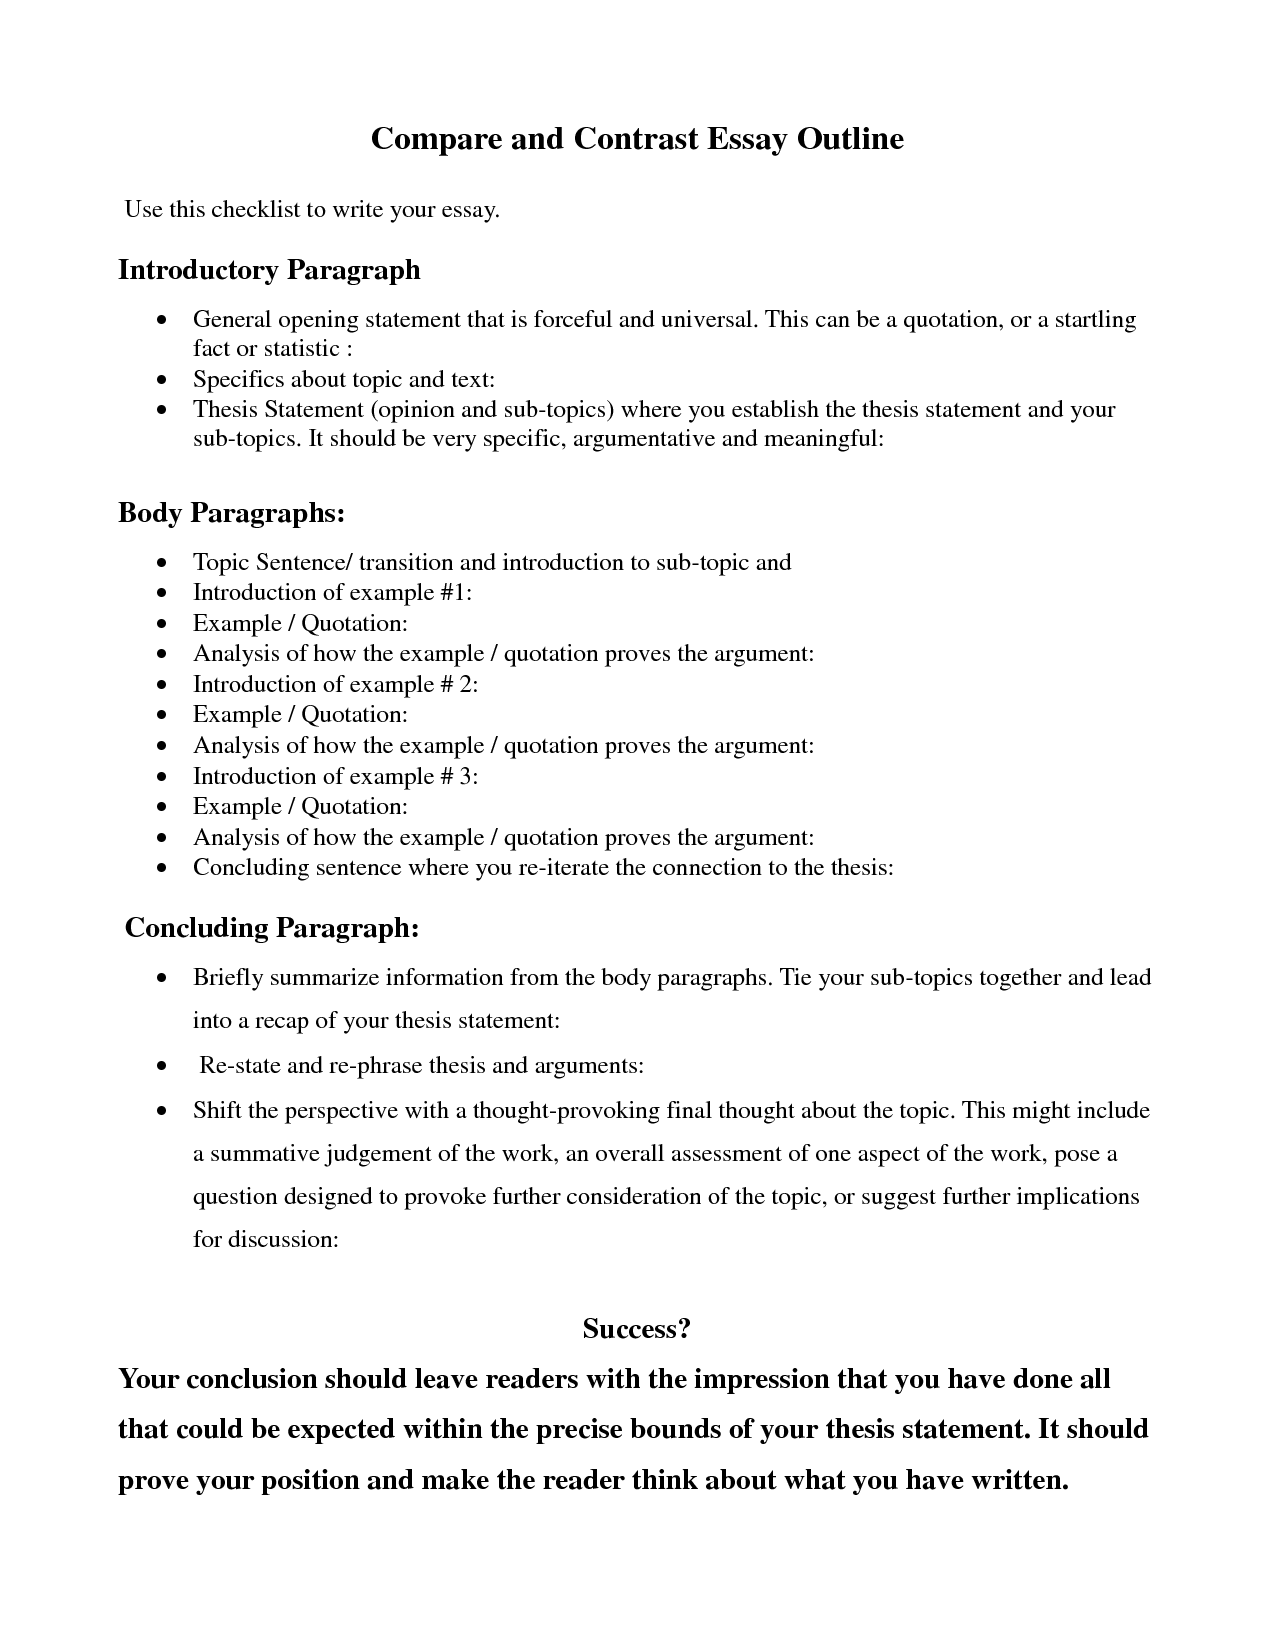 002 Compare And Contrast Essay Template Exceptional For Middle School 8th Grade Examples Full